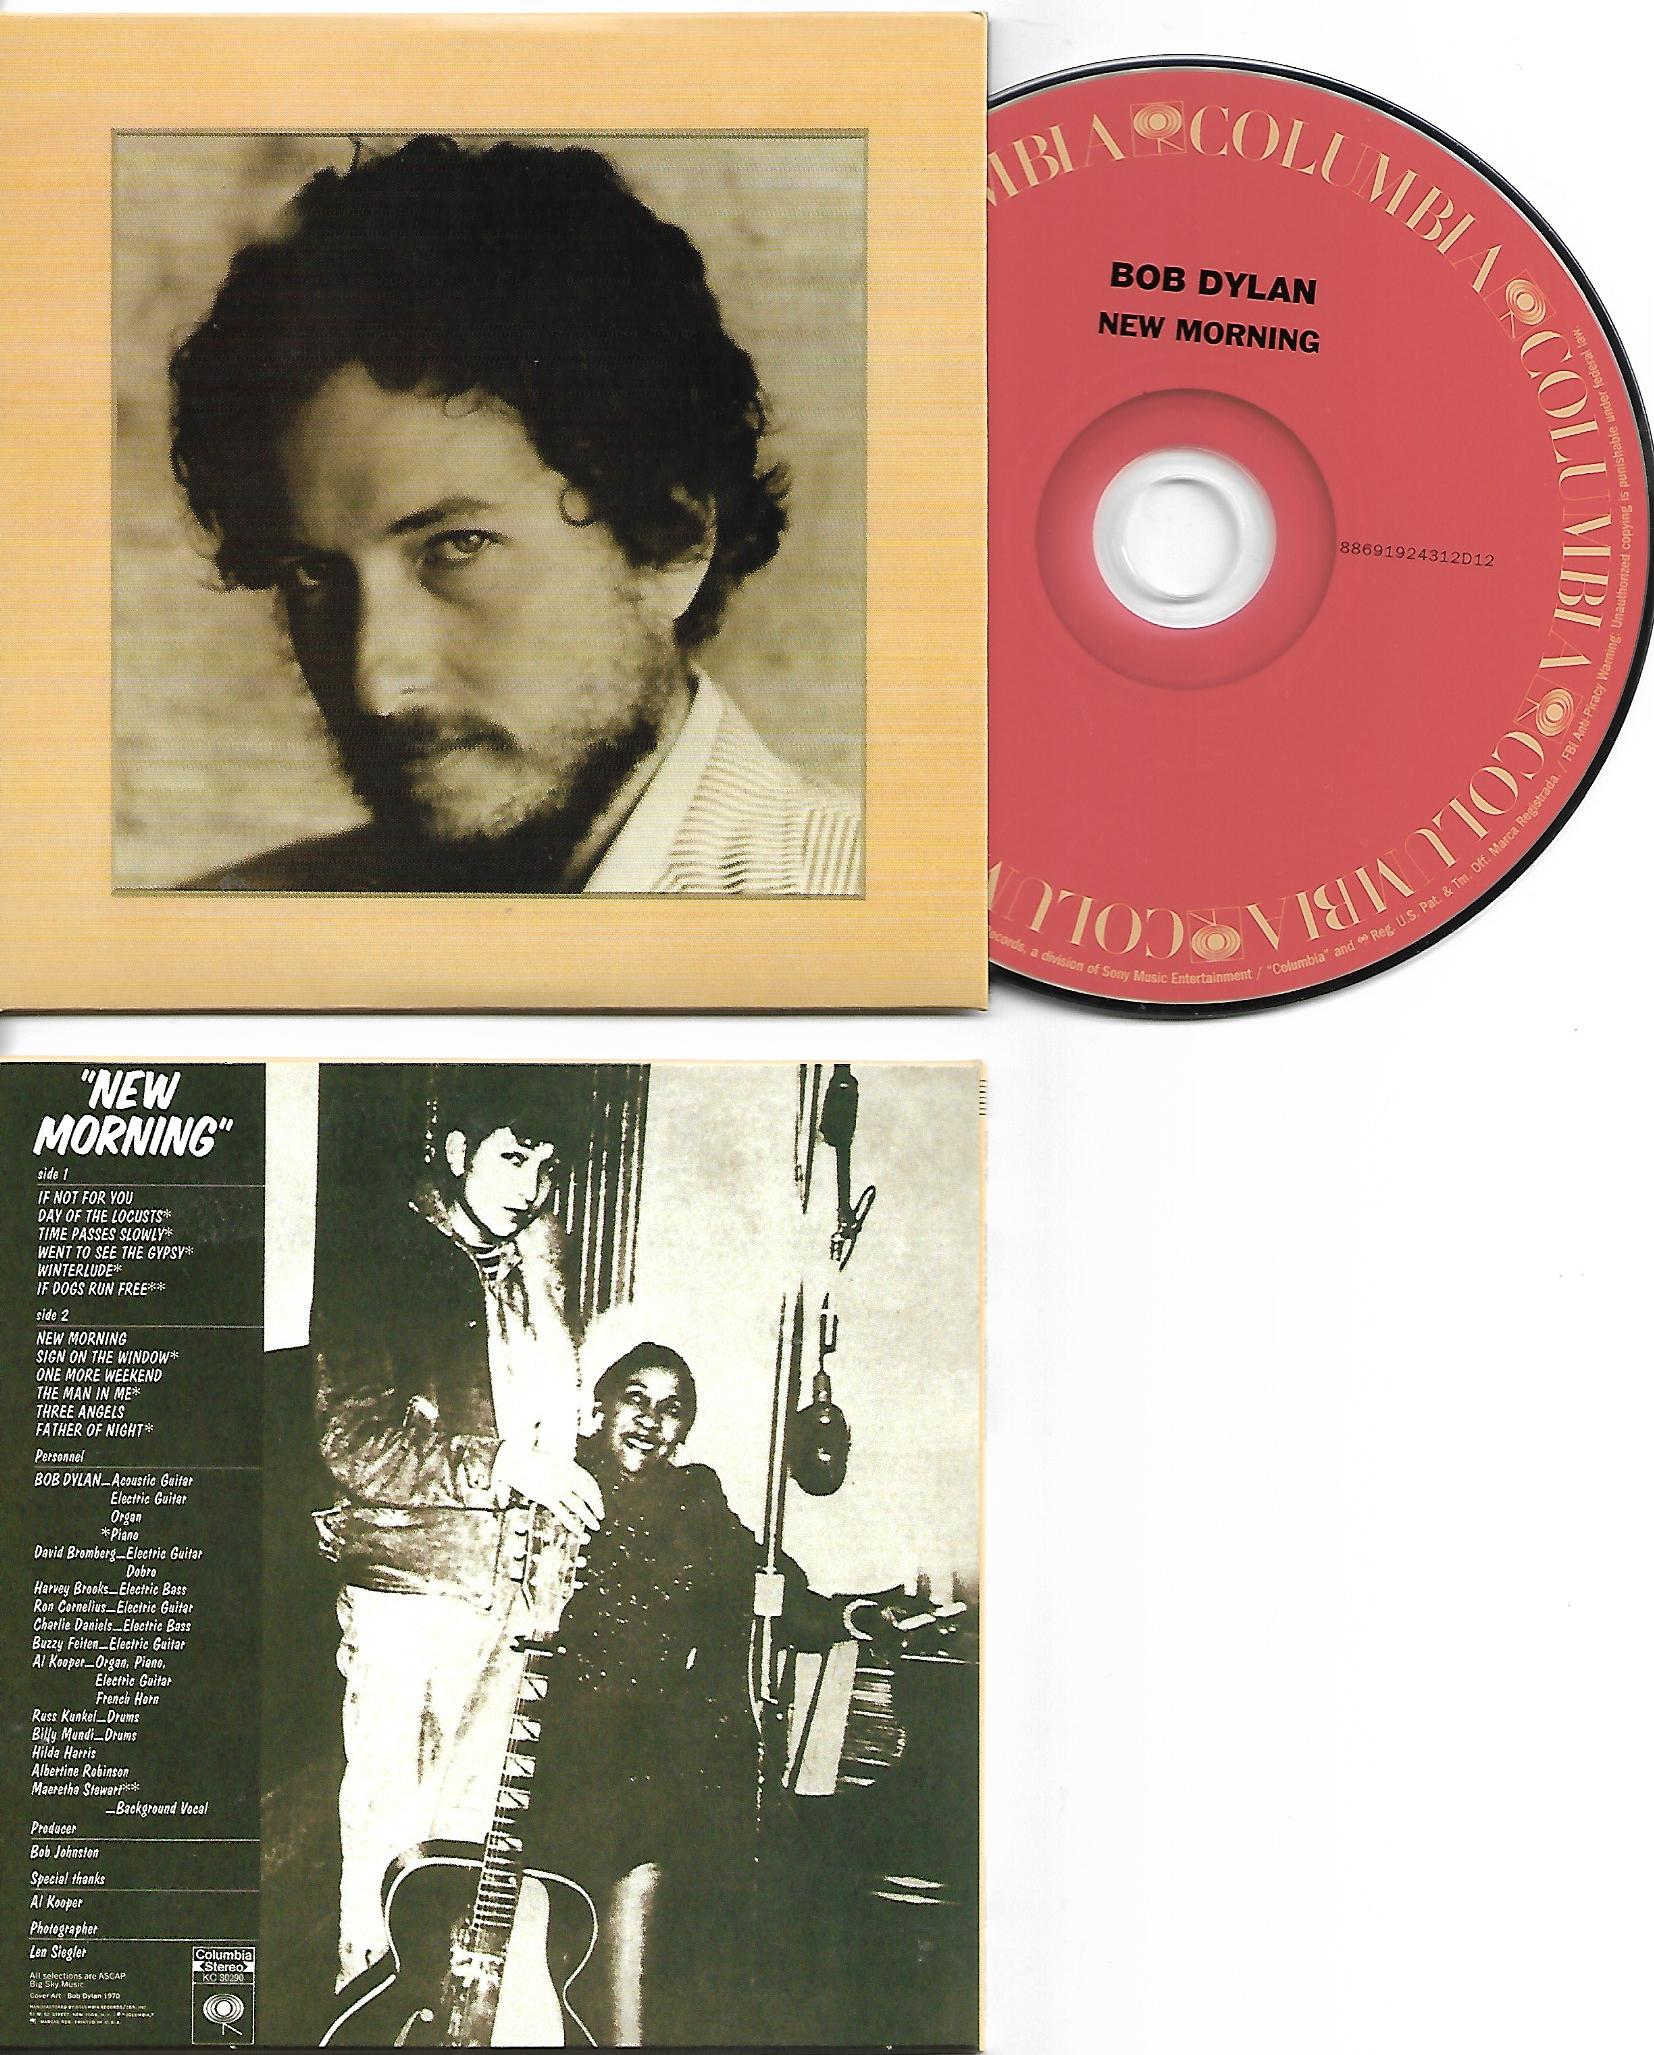 BOB DYLAN - New Morning 1970 - MINI LP REPLICA CARD BOARD SLEEVE - CD